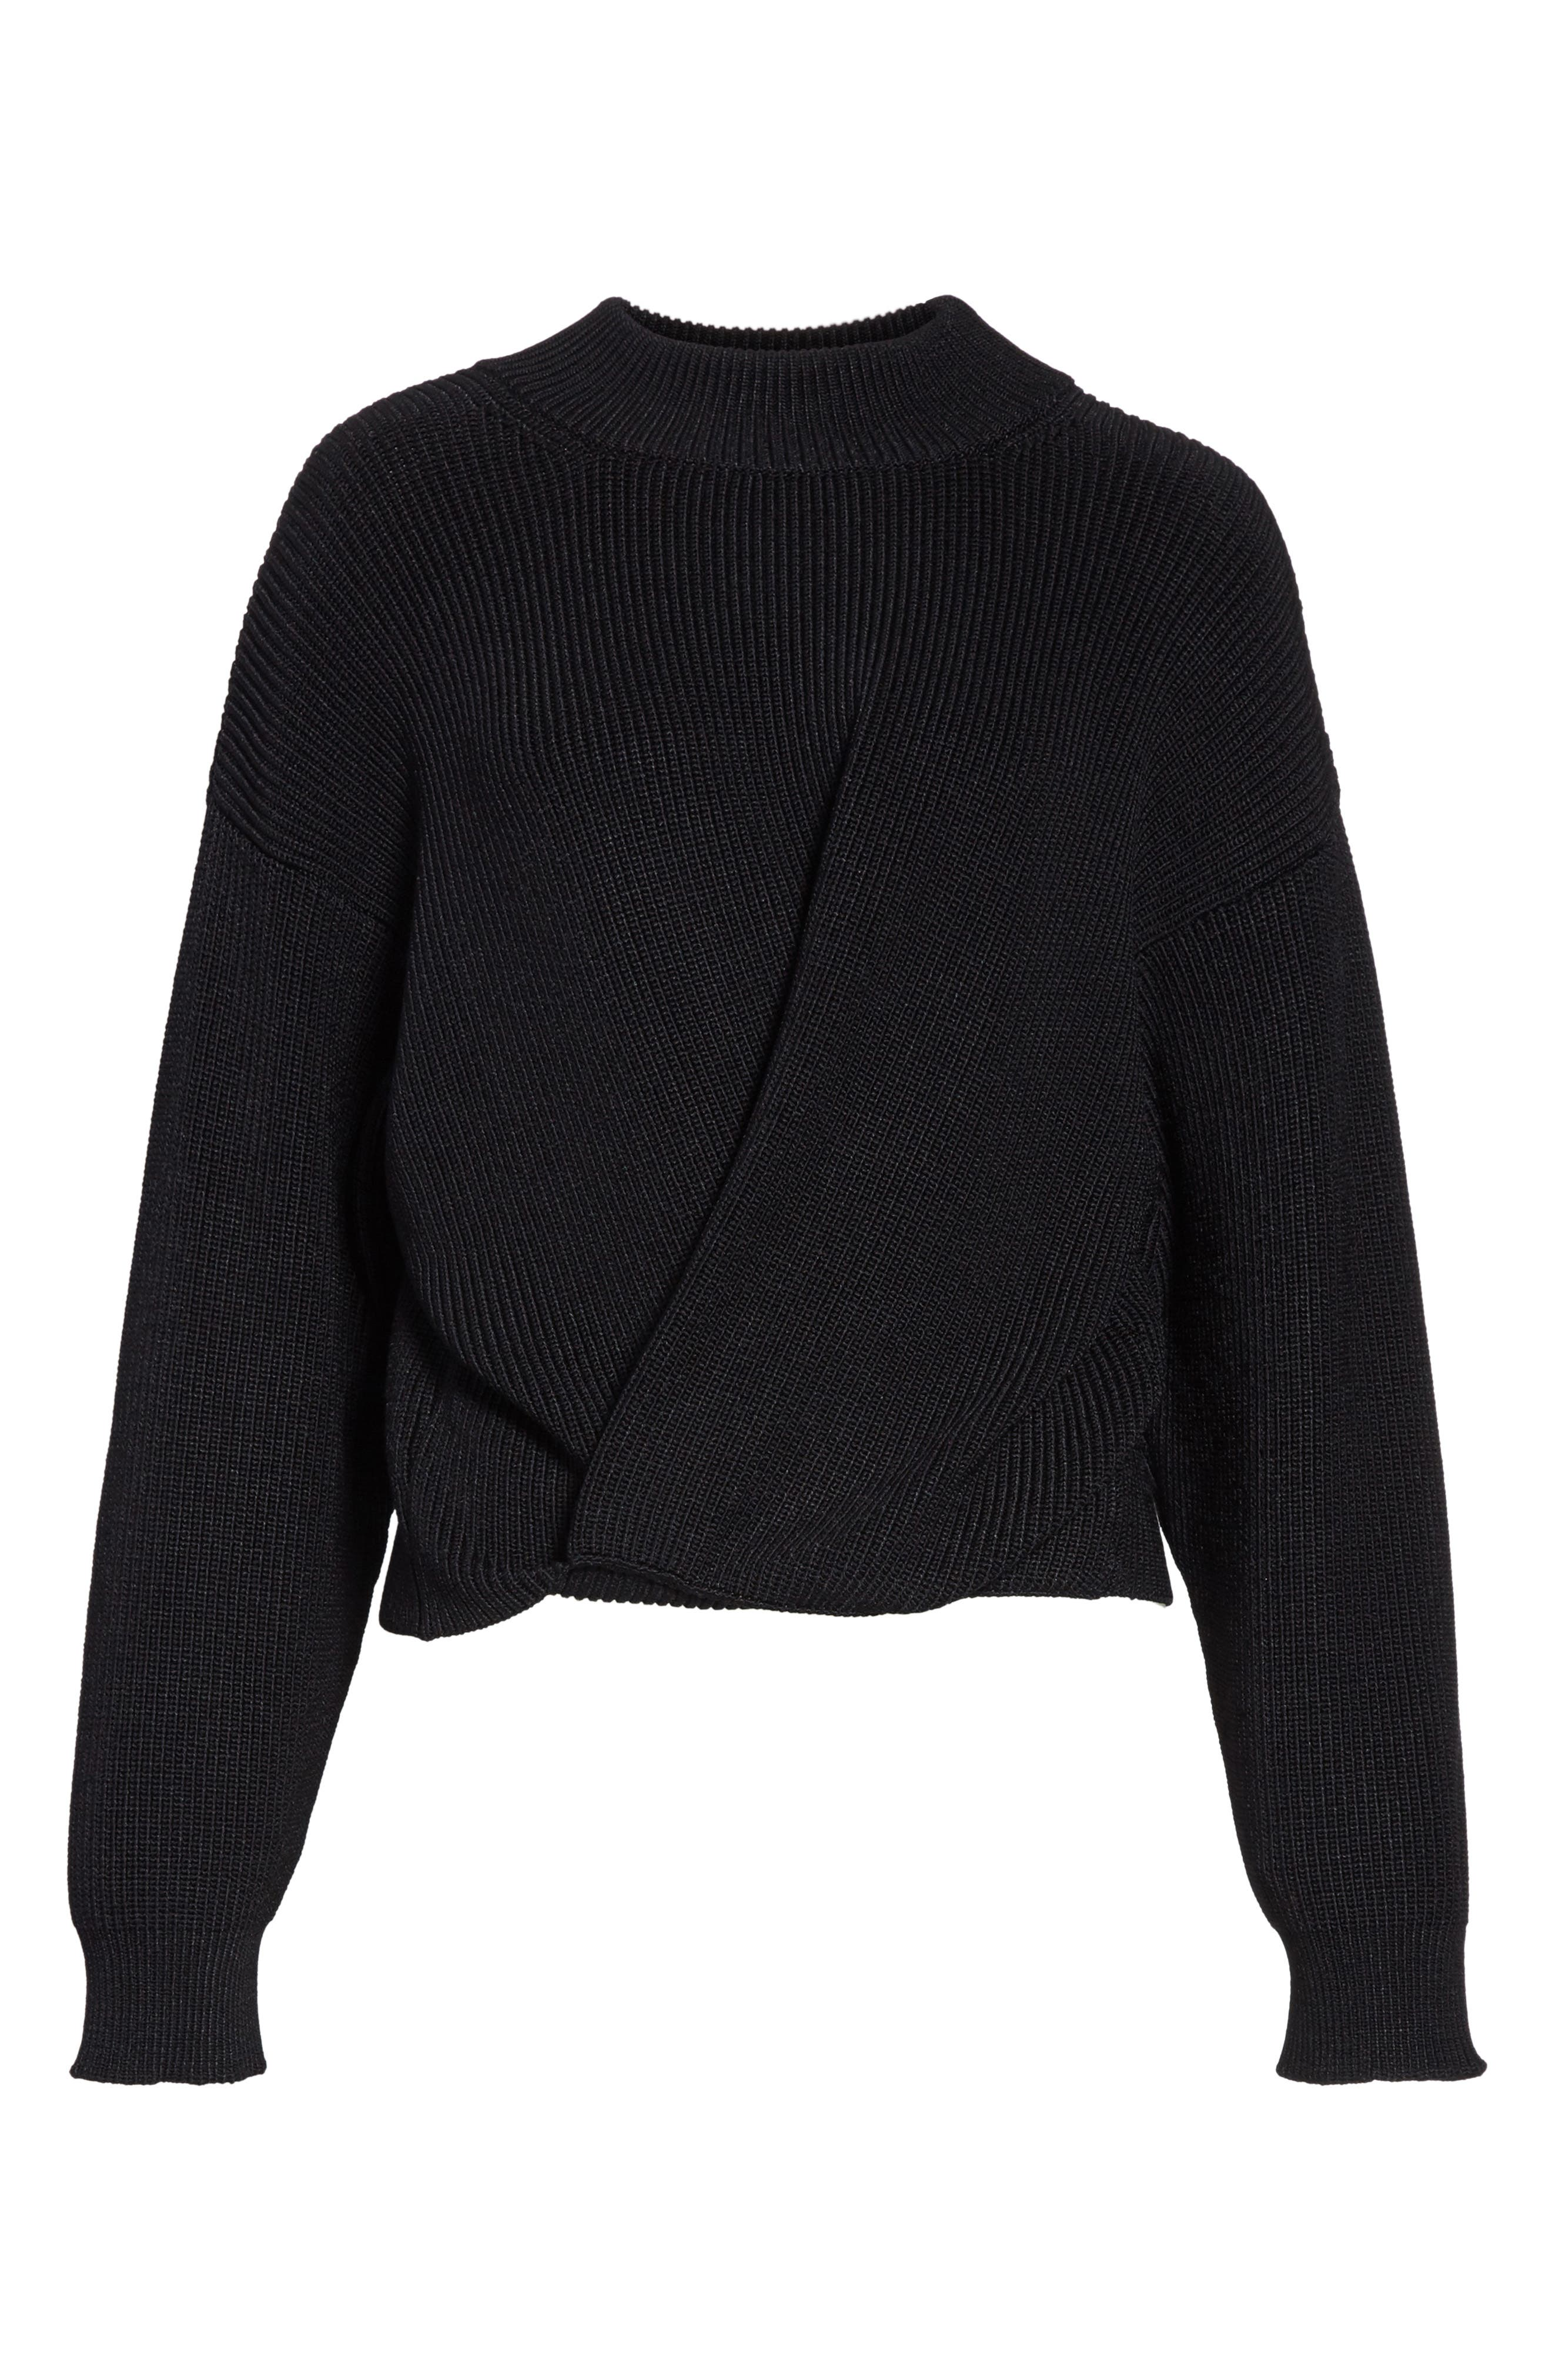 Mock Neck Sweater,                             Alternate thumbnail 6, color,                             001